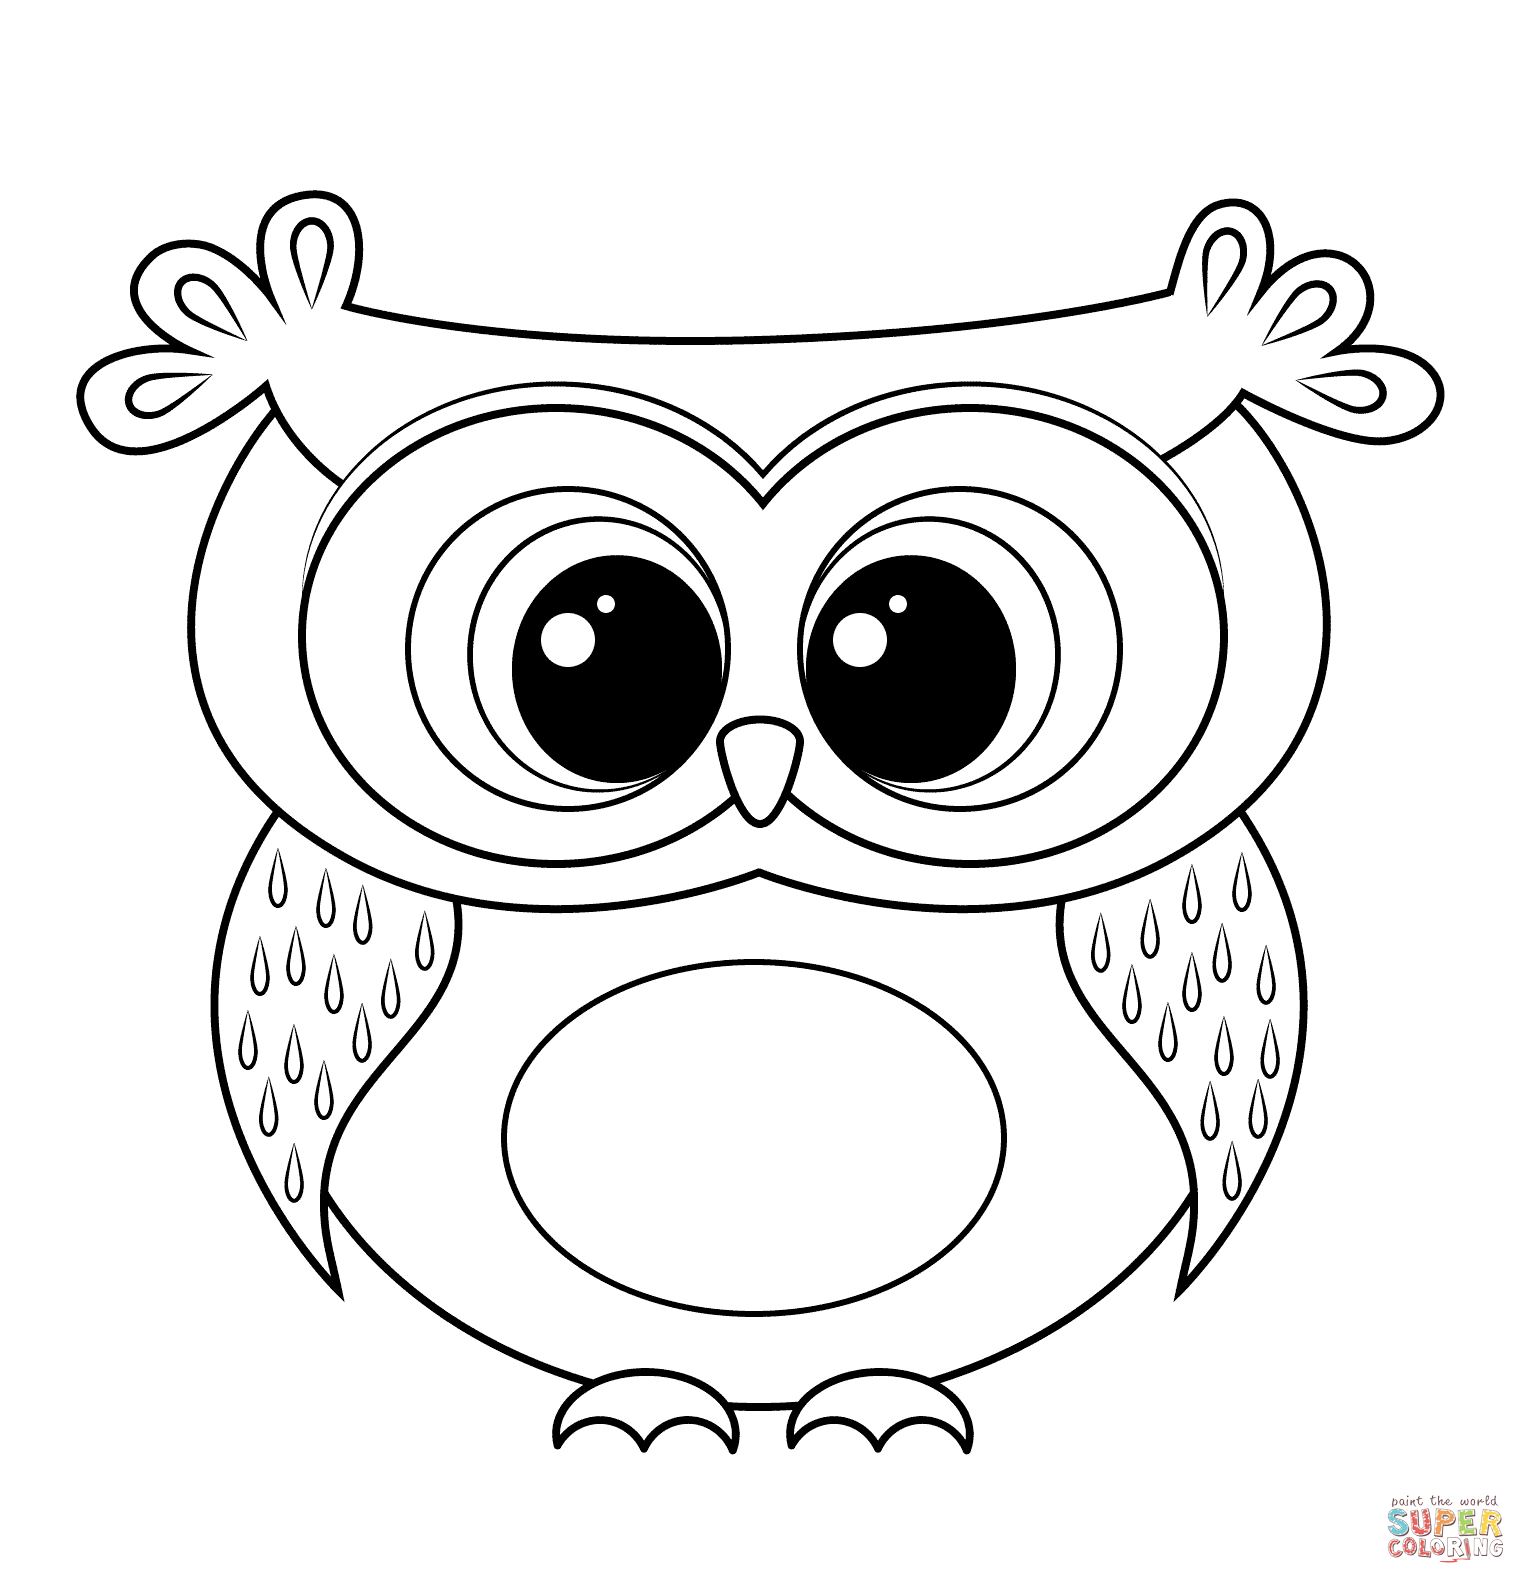 cartoon owls coloring pages - photo#11